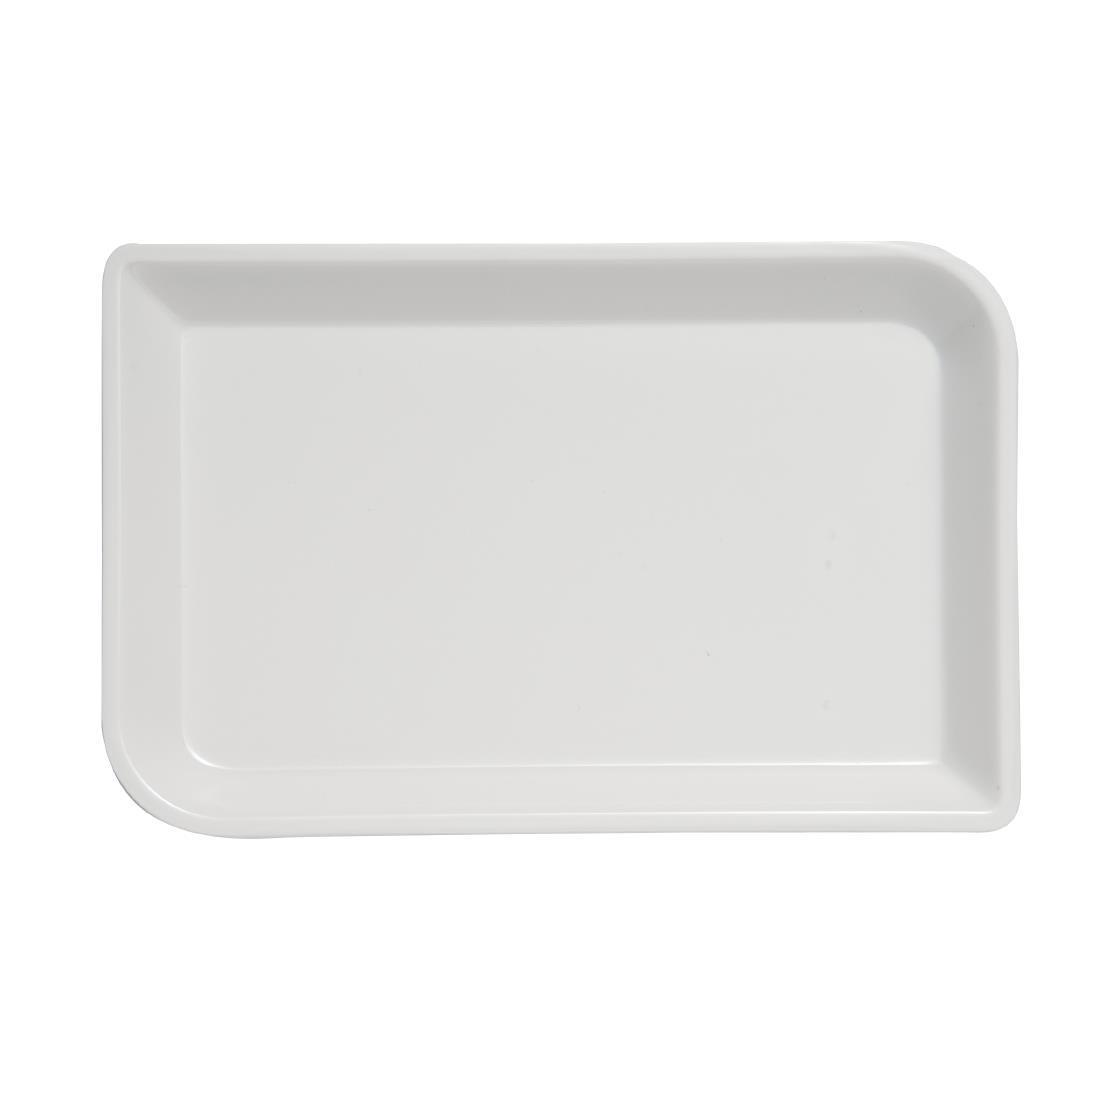 APS White Counter System 220 x 145 x 20mm - Each - GH375